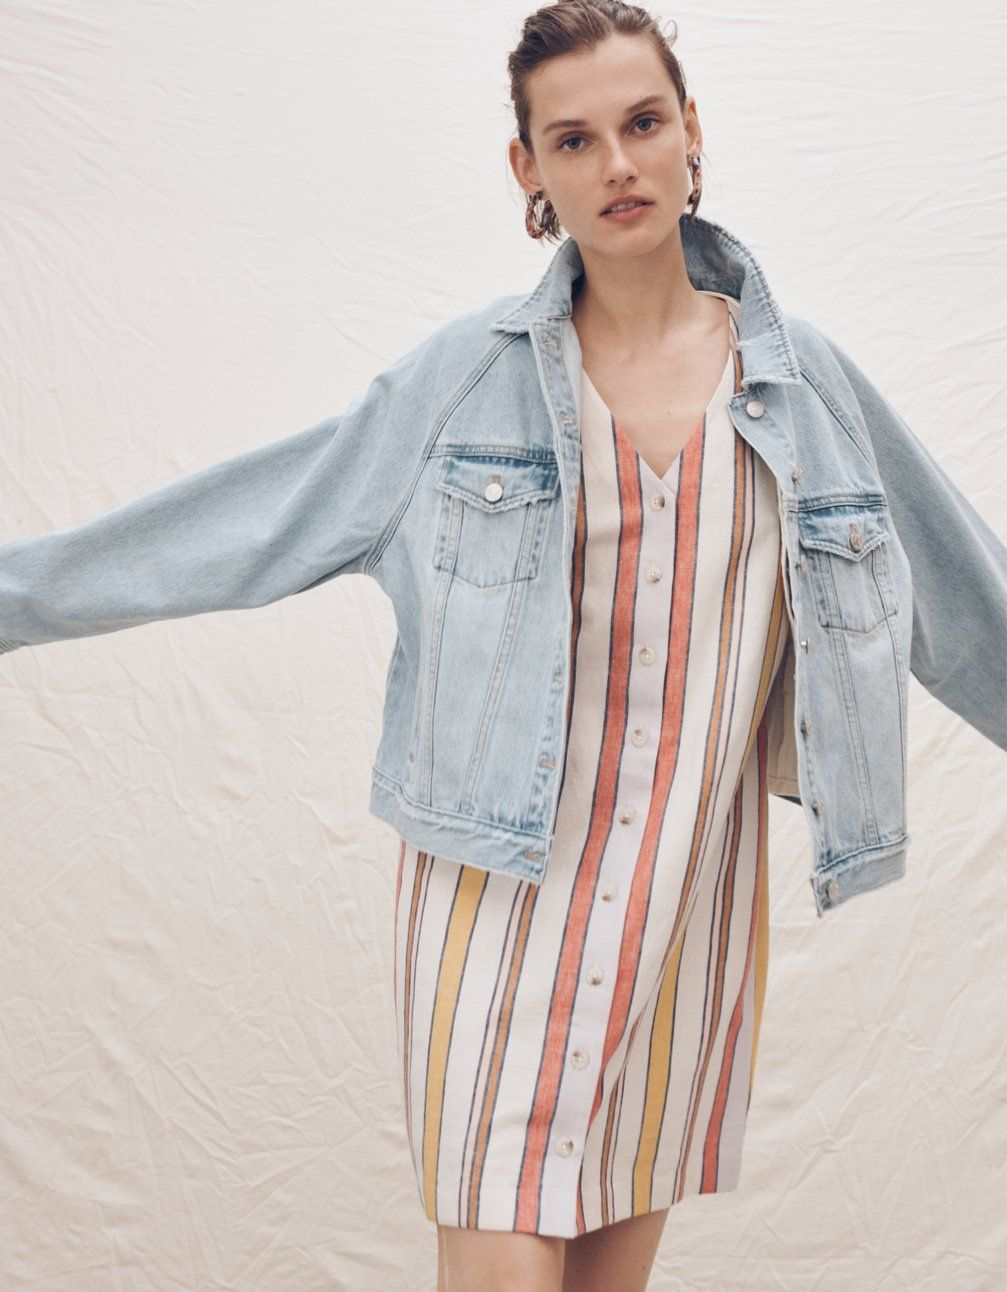 e2872e7d4f6 madewell raglan oversized jean jacket worn with button-front easy dress.